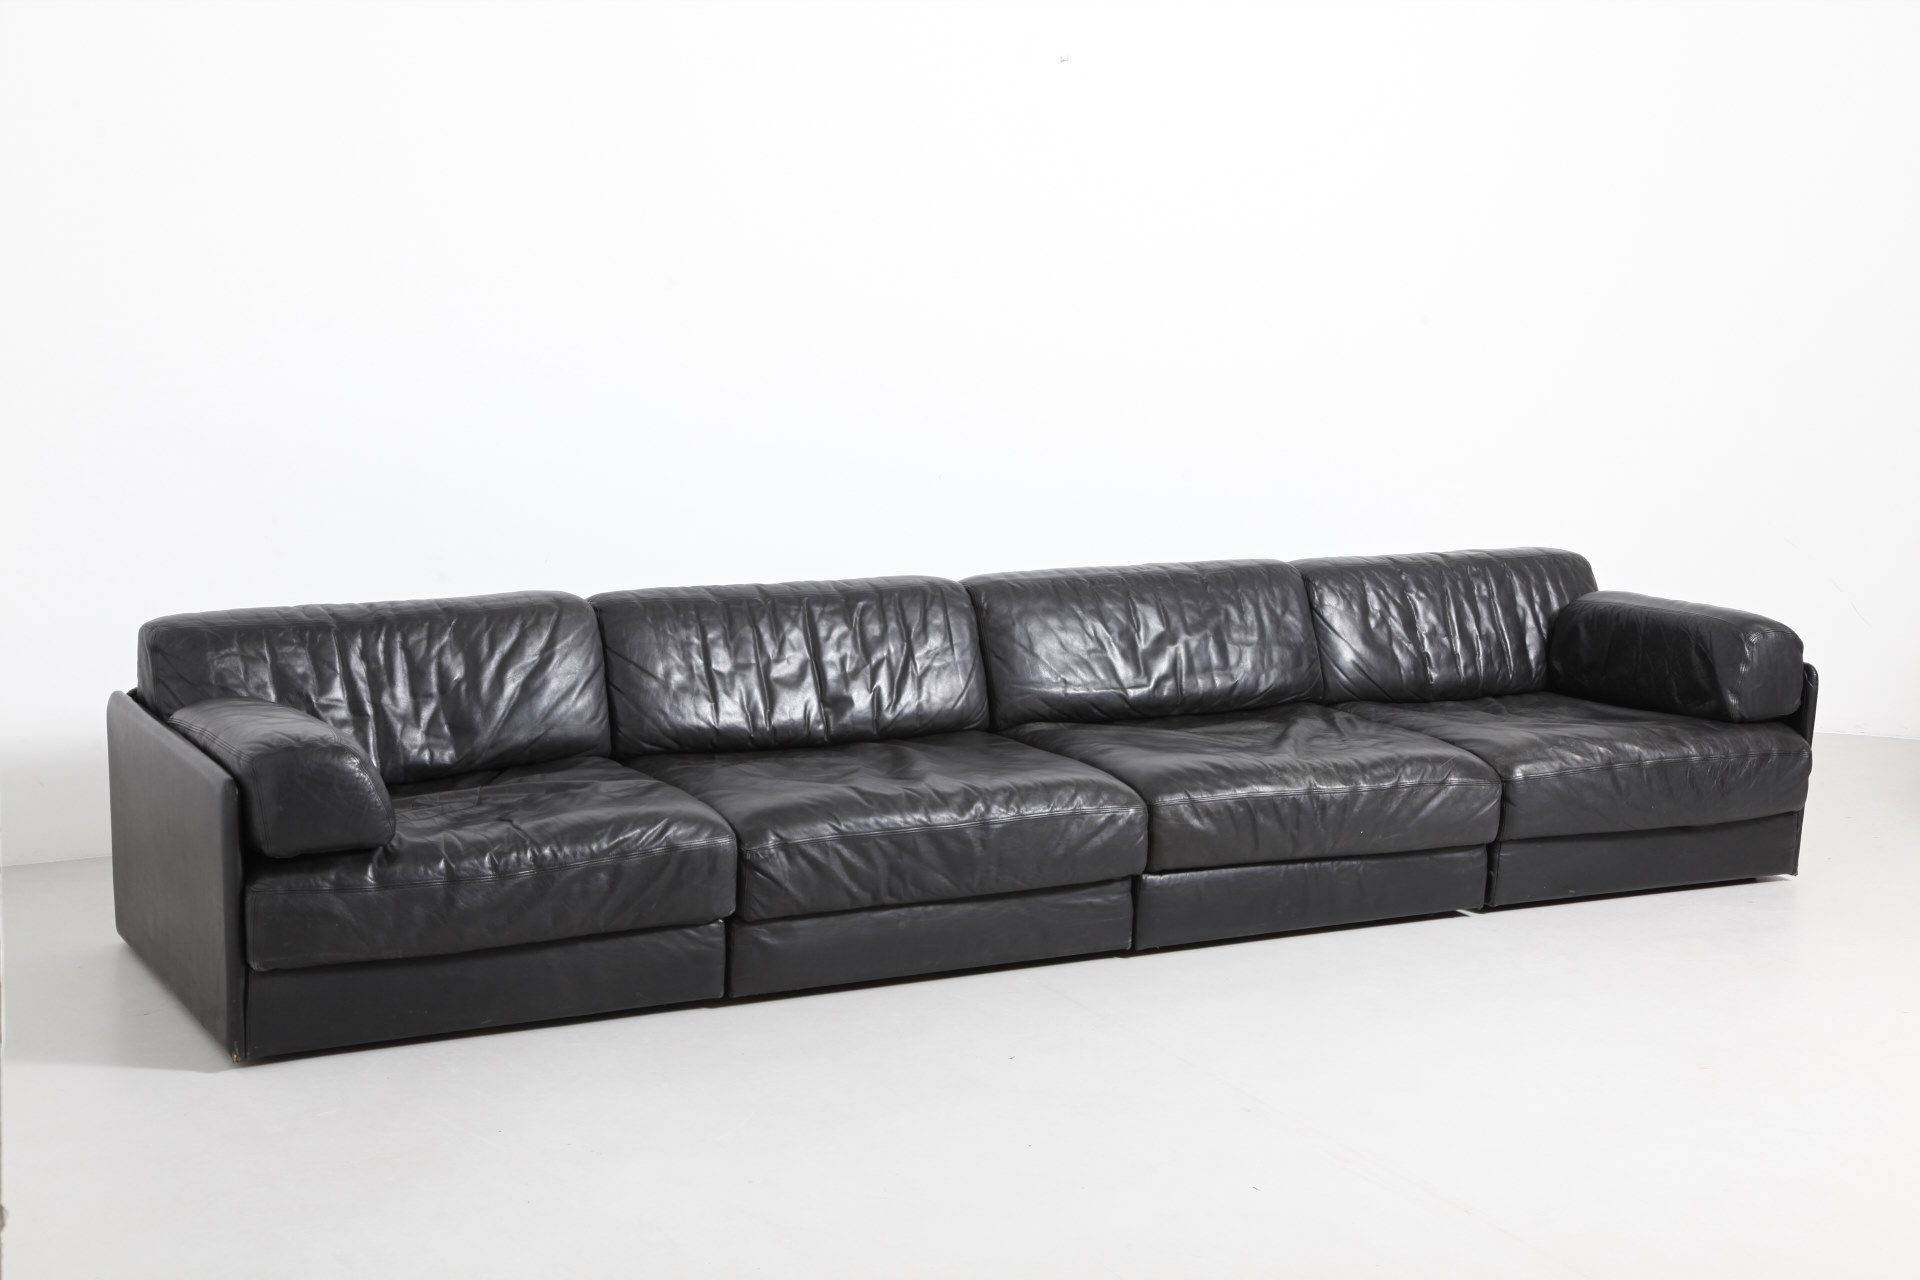 Black leather sofa of 4 elements by de Sede Model DS 76 Can be